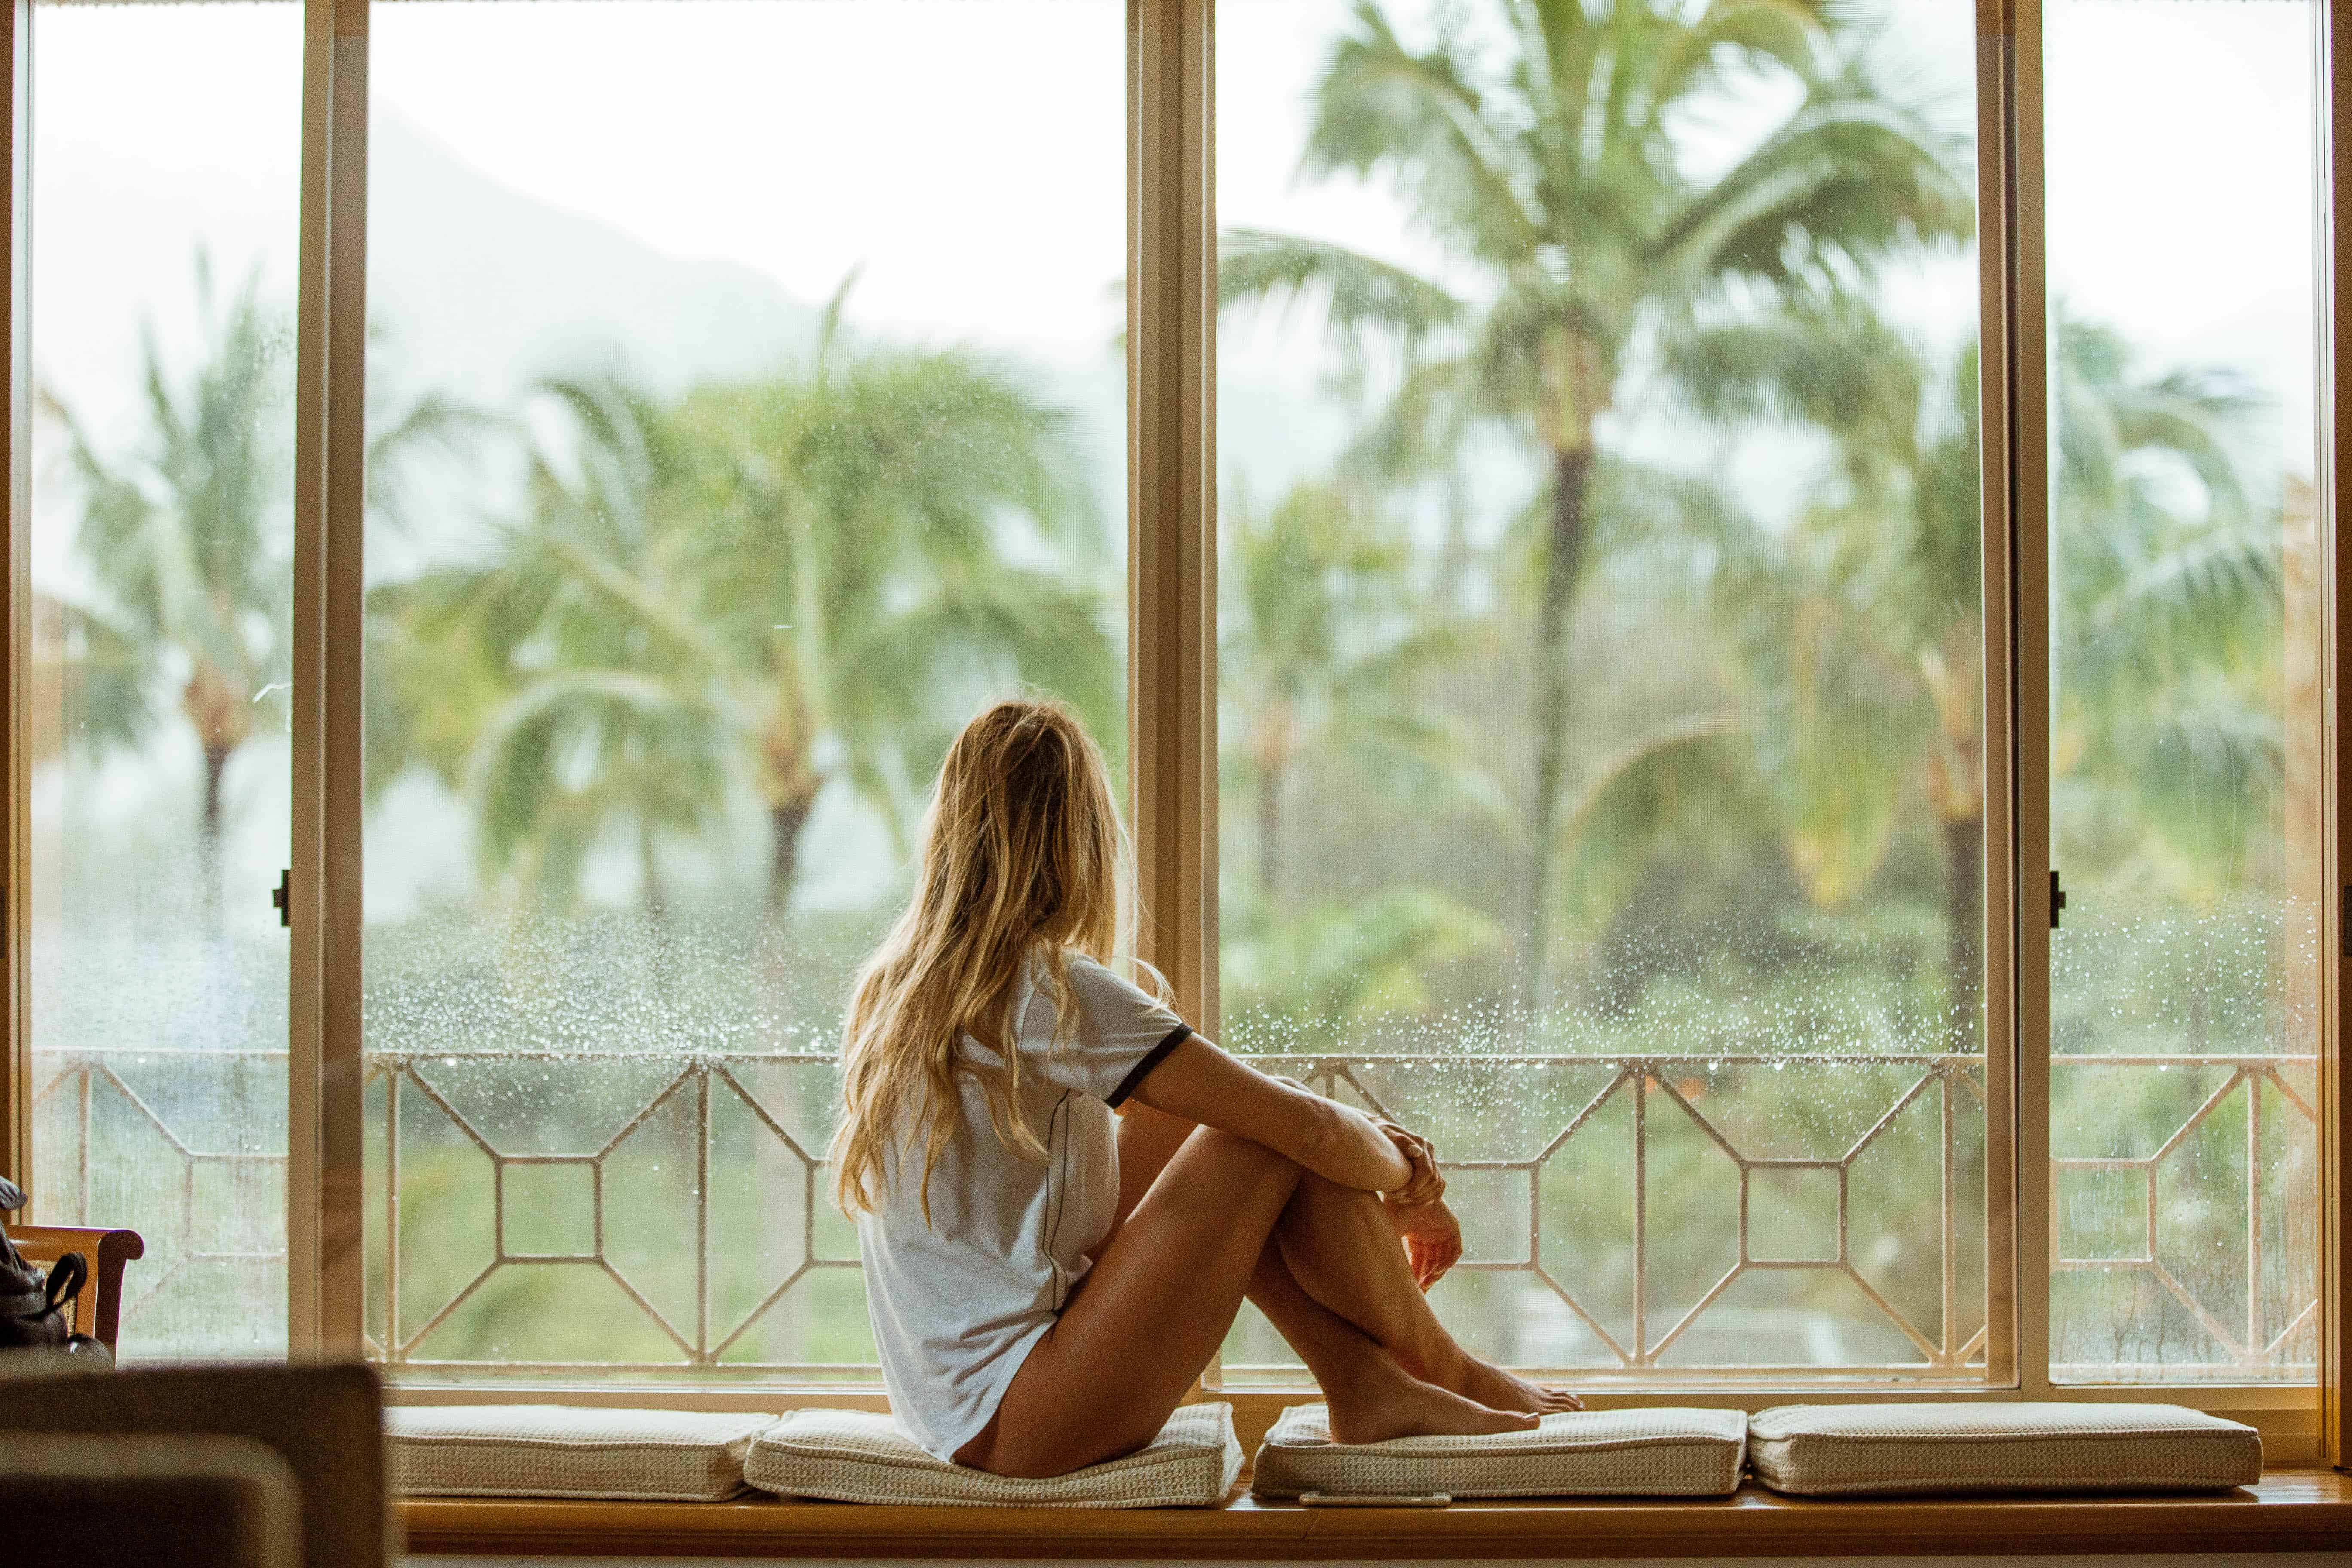 woman looking out windows with palm trees in the distance